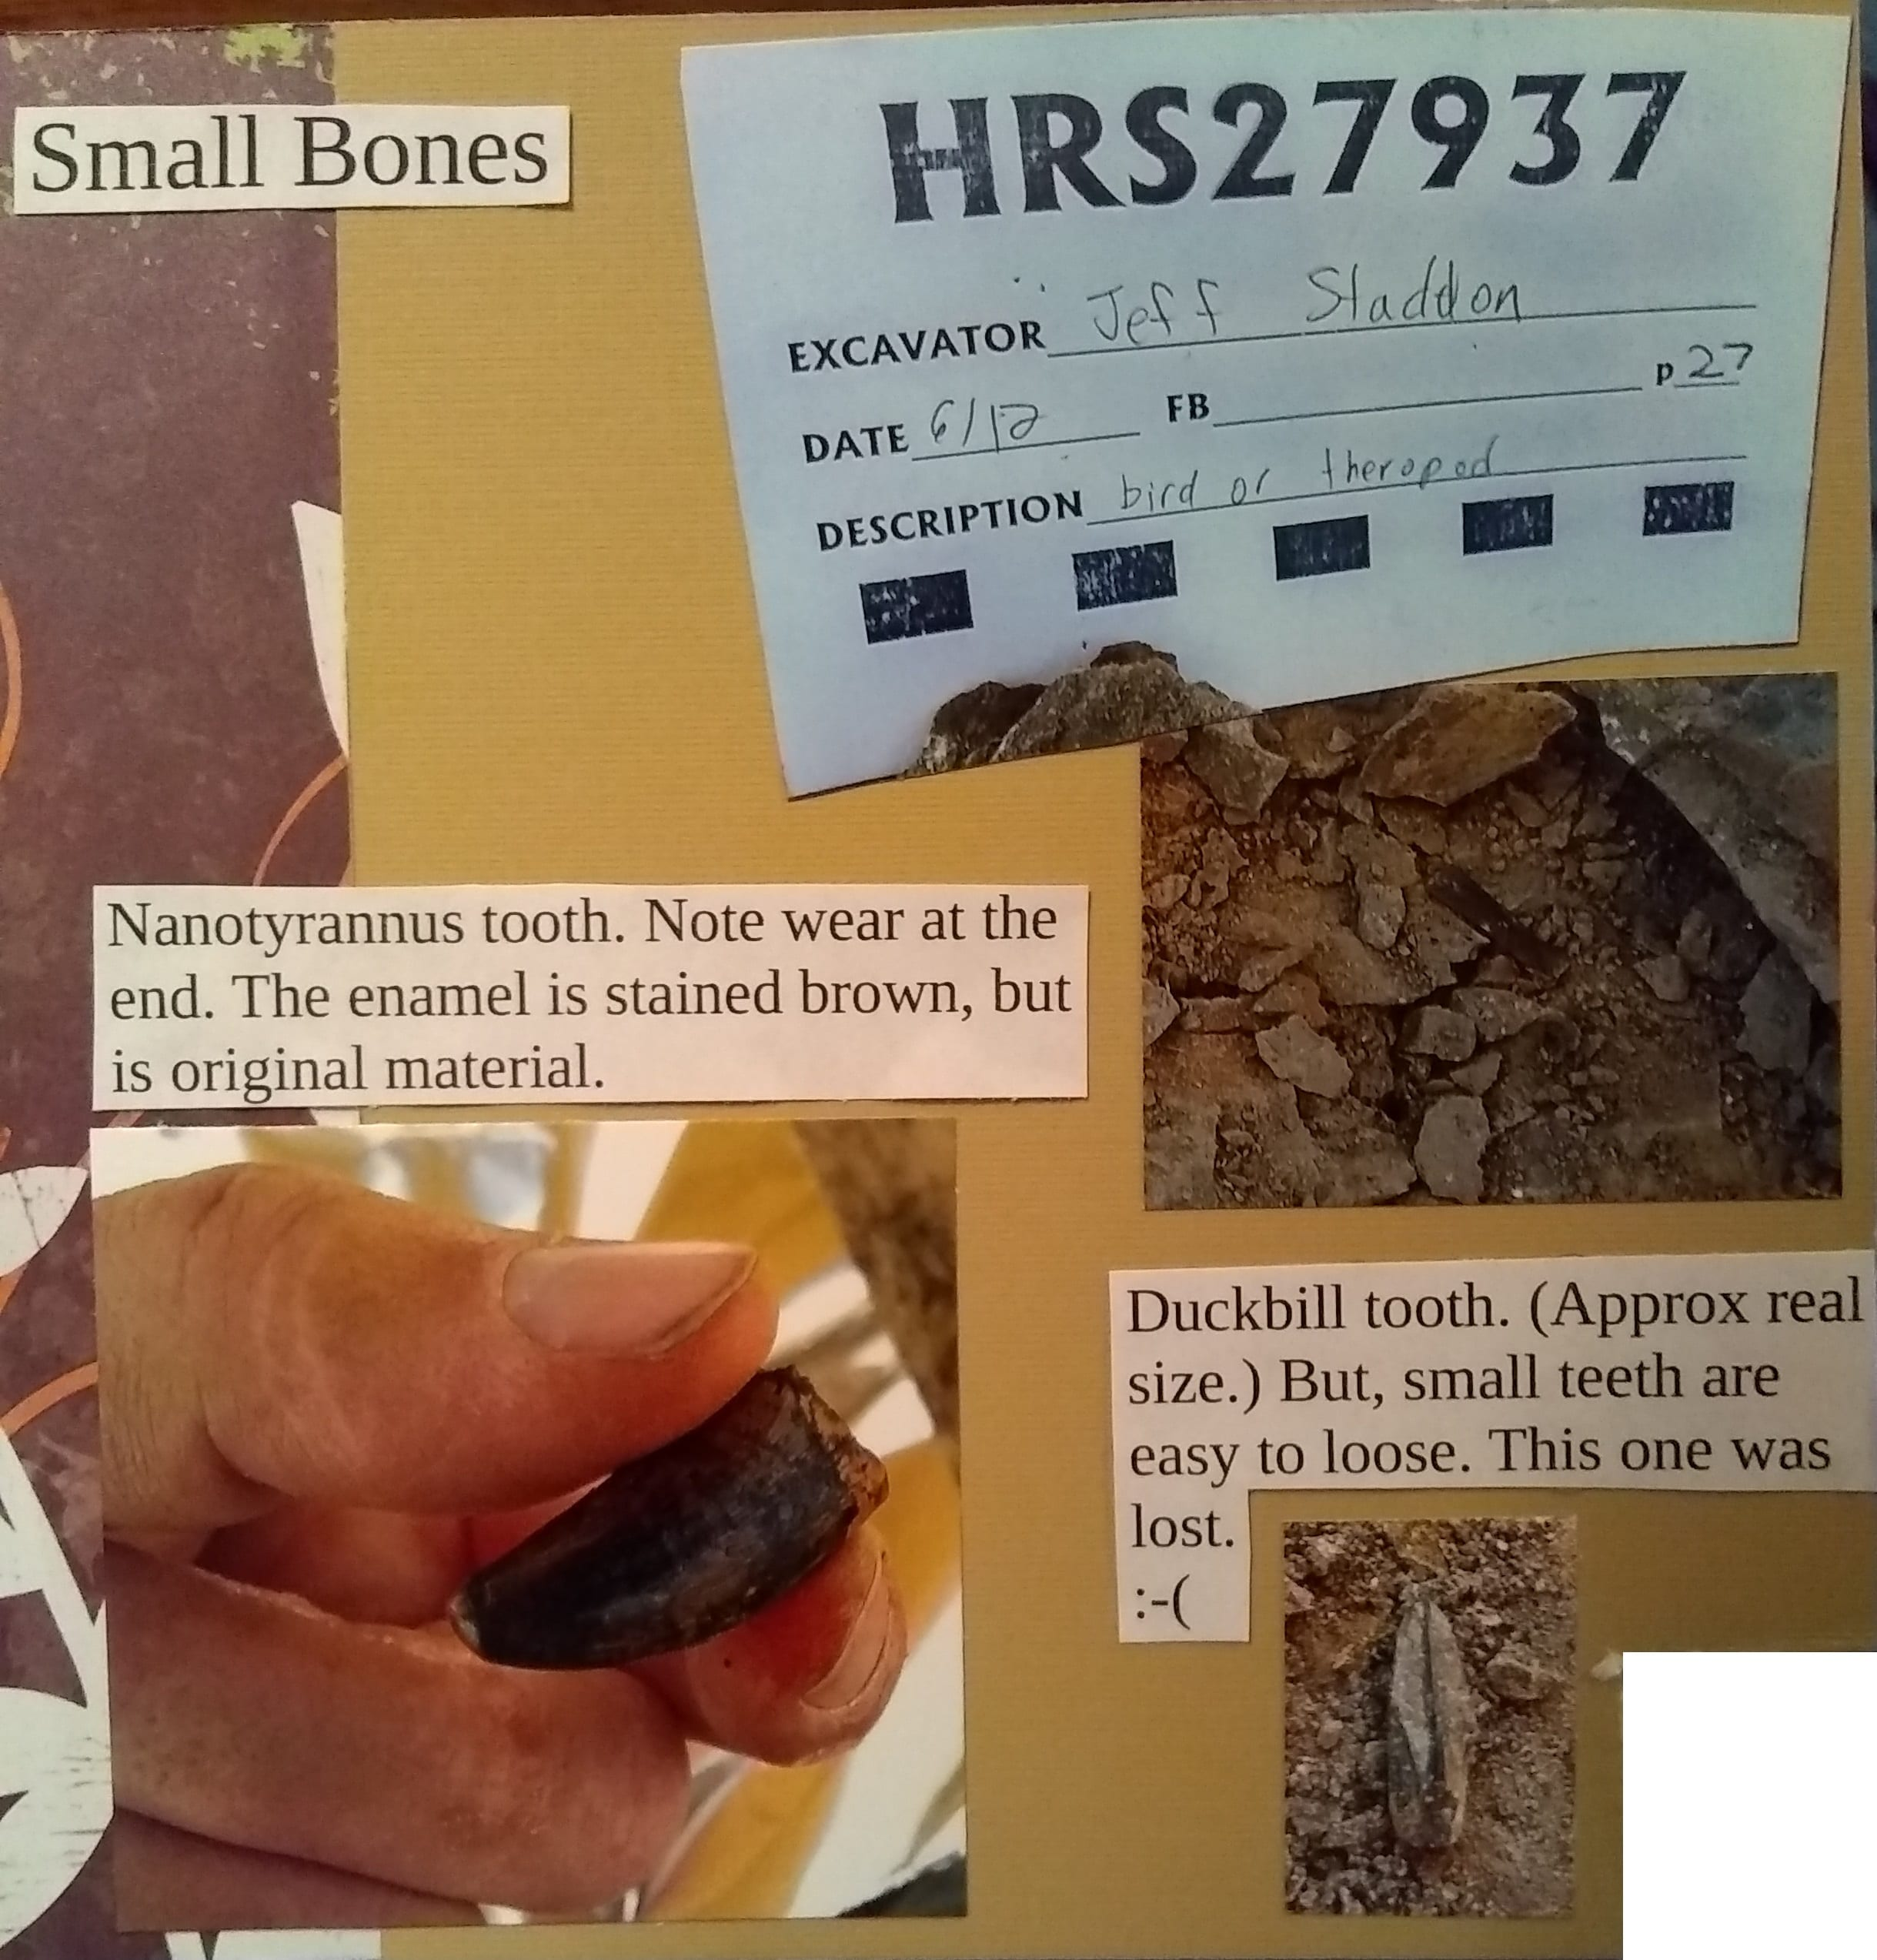 Top: Small bones. Left: Nanotyrannus tooth. Note wear at the end. The enamel is stained brown, but is original material. Bottom: Duckbill tooth (Approximately real size). Small teeth are easy to lose; this one was lots. :-(